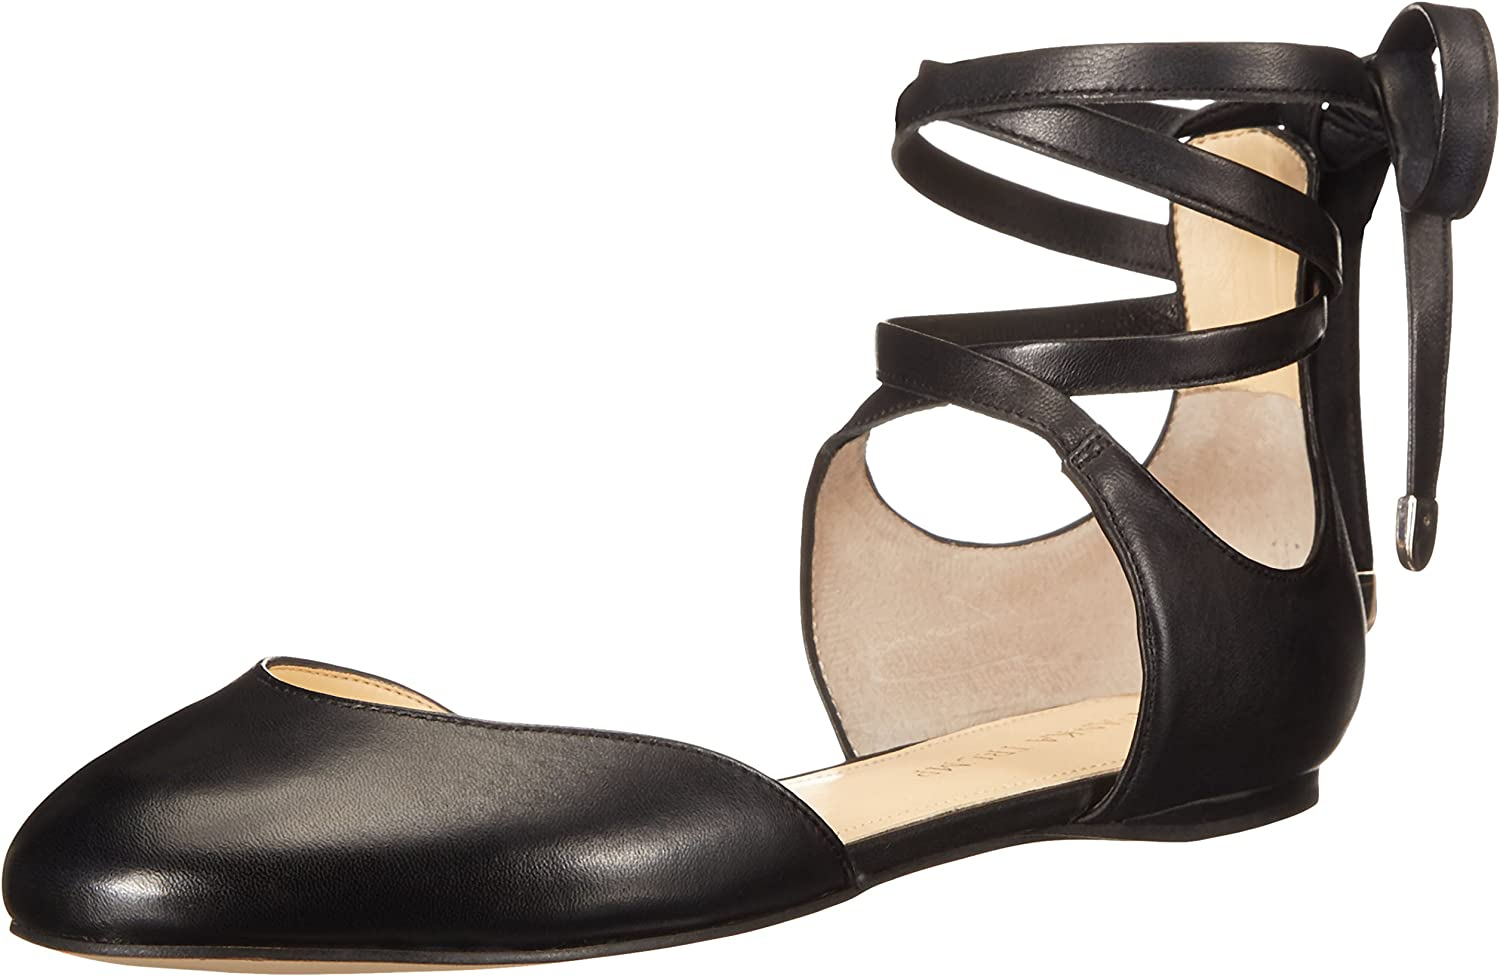 Ivanka Trump Wouomo Elise Leather Ankle-High Leather Seal